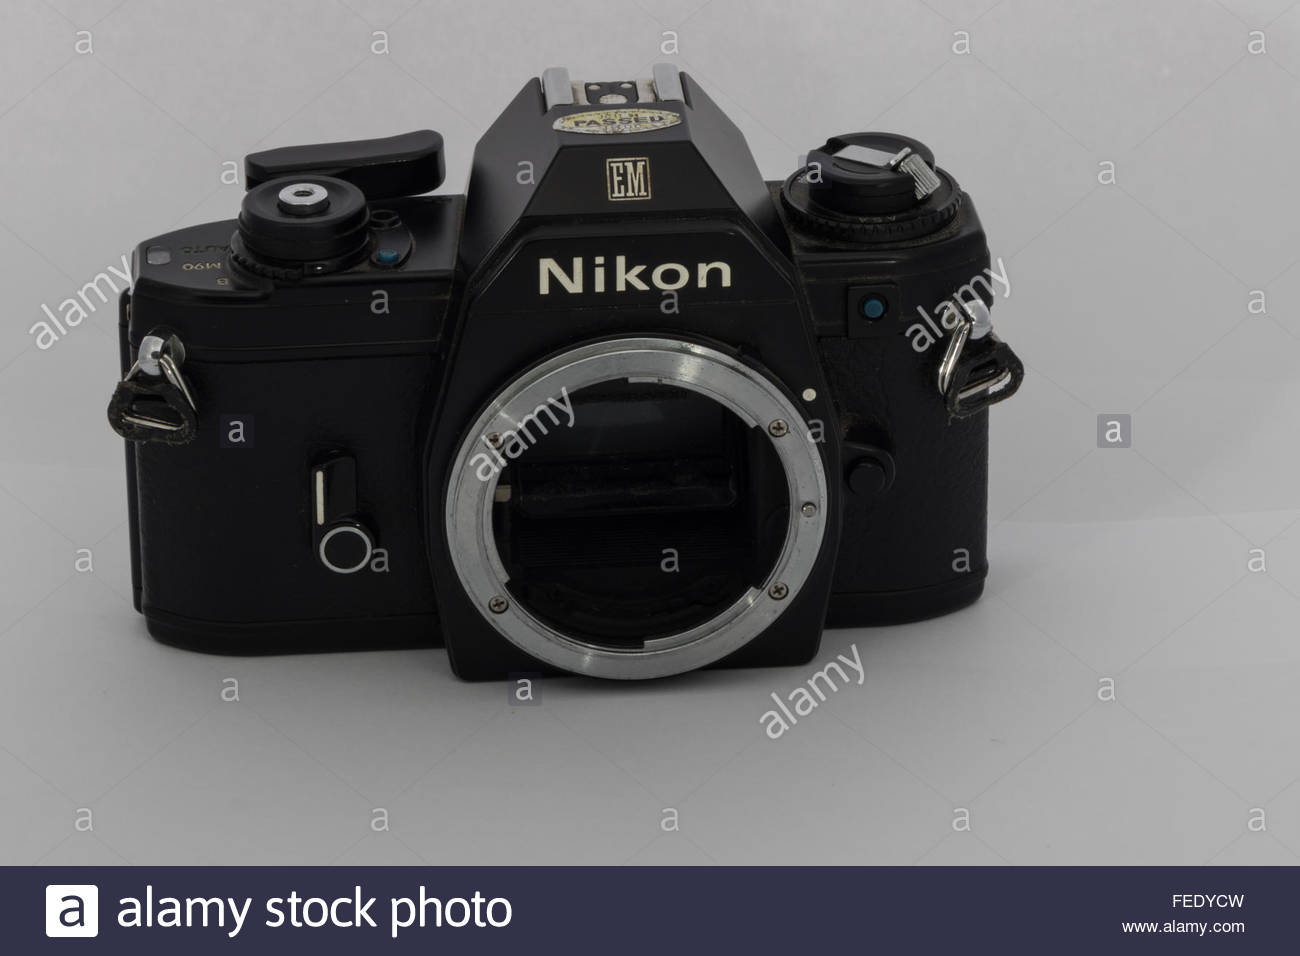 A Nikon EM 35mm SLR film SLR camera body only. An entry-level SLR made in Japan circa 1980. - Stock Image